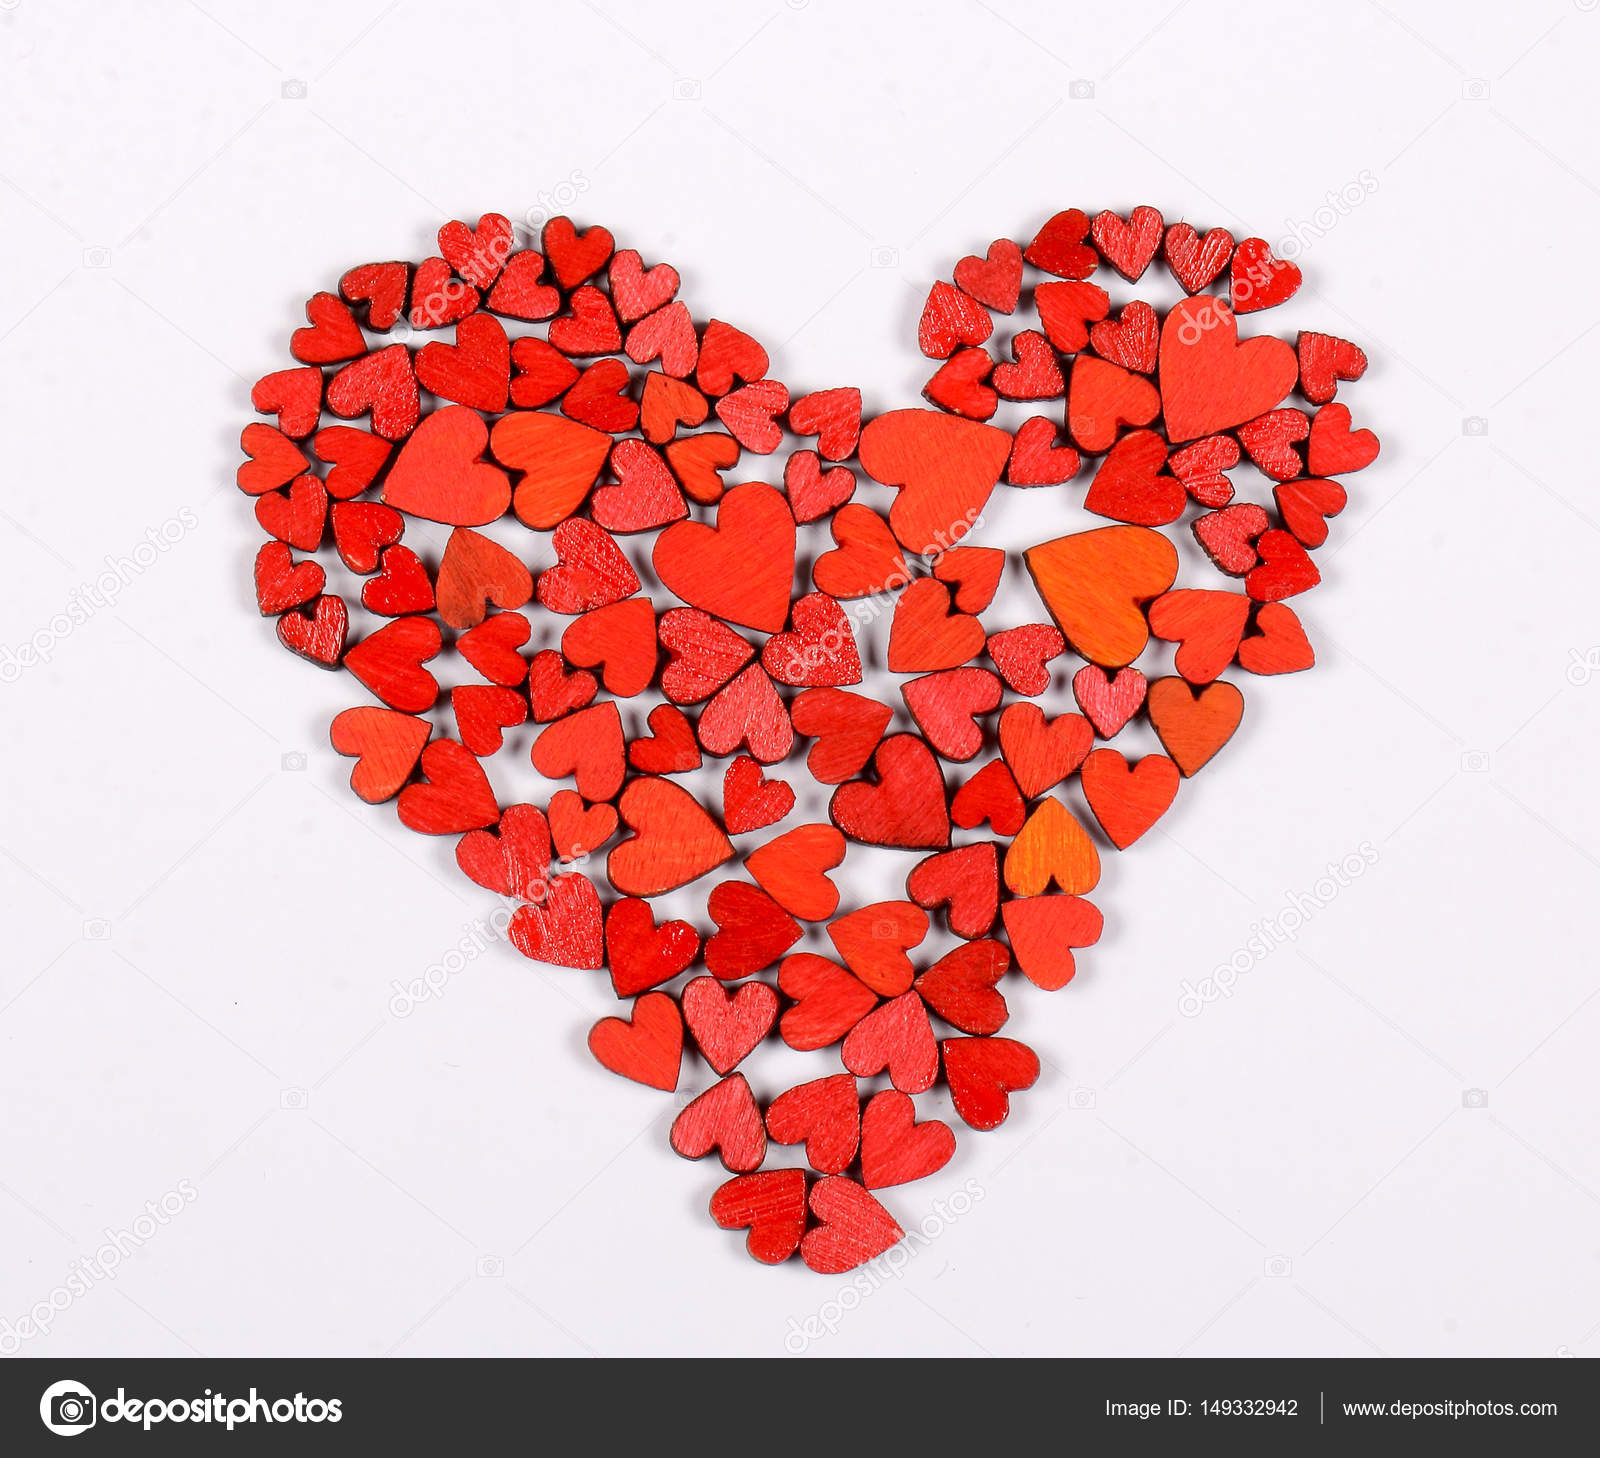 A Large Heart Consists Of Small Hearts Of Different Color And Size